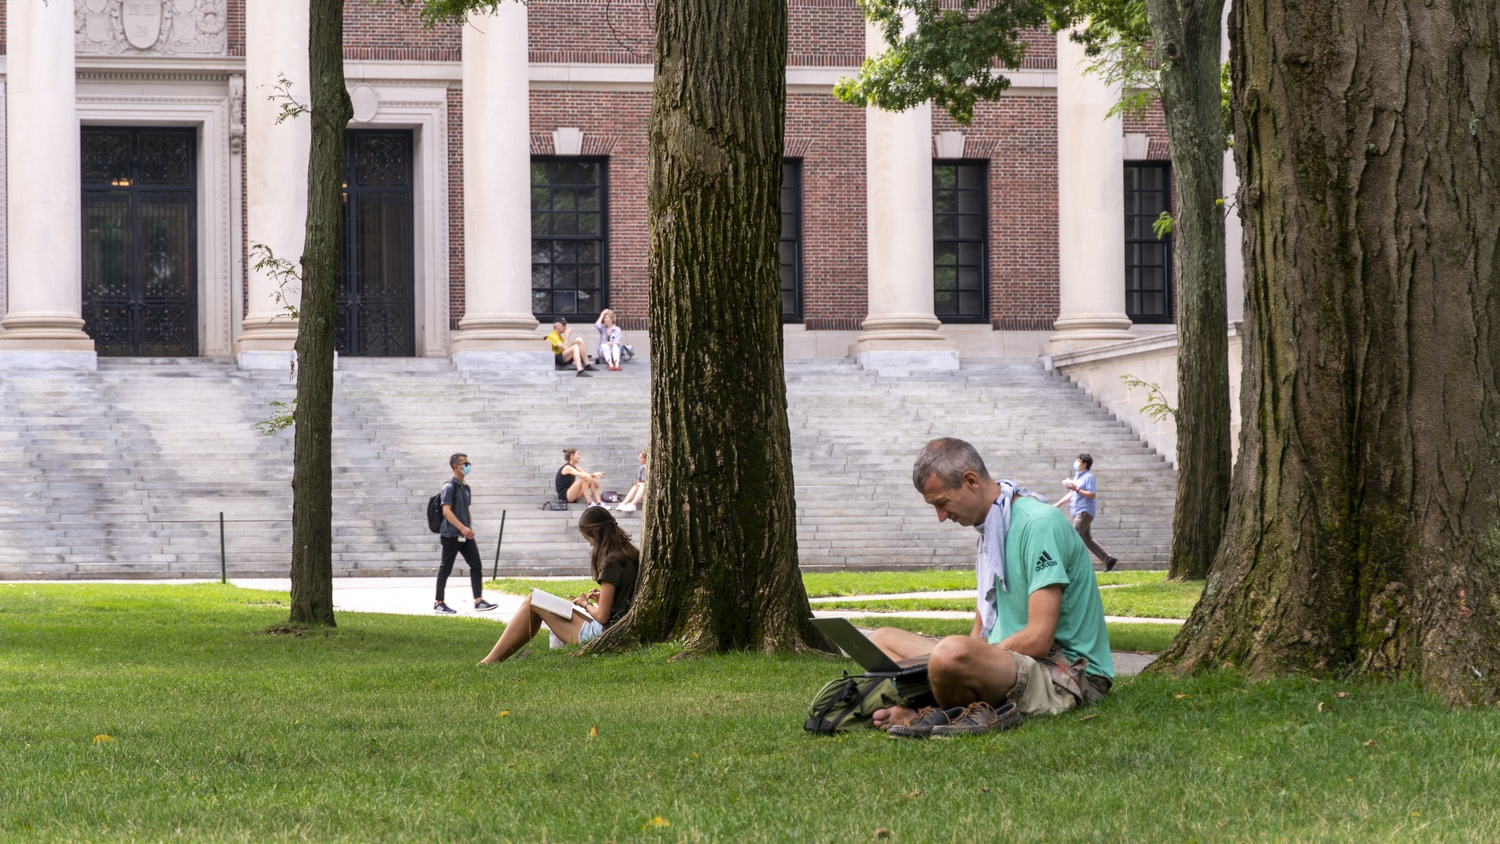 Harvard will introduce a color-coded system to designate different phases of campus reopening next spring.